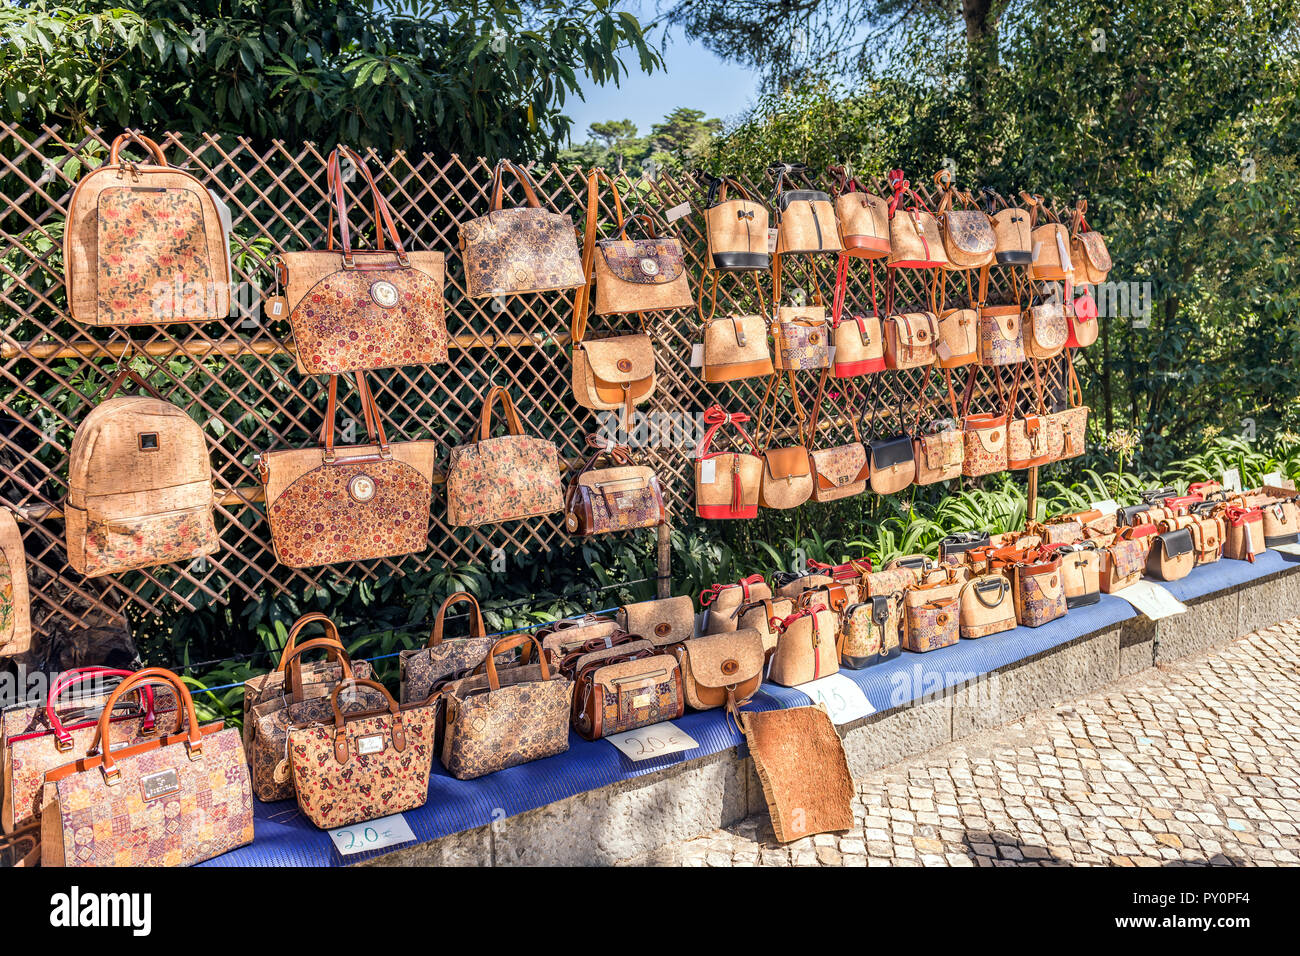 Cork bags and purses for sale along the pavement, Sintra Portugal - Stock Image